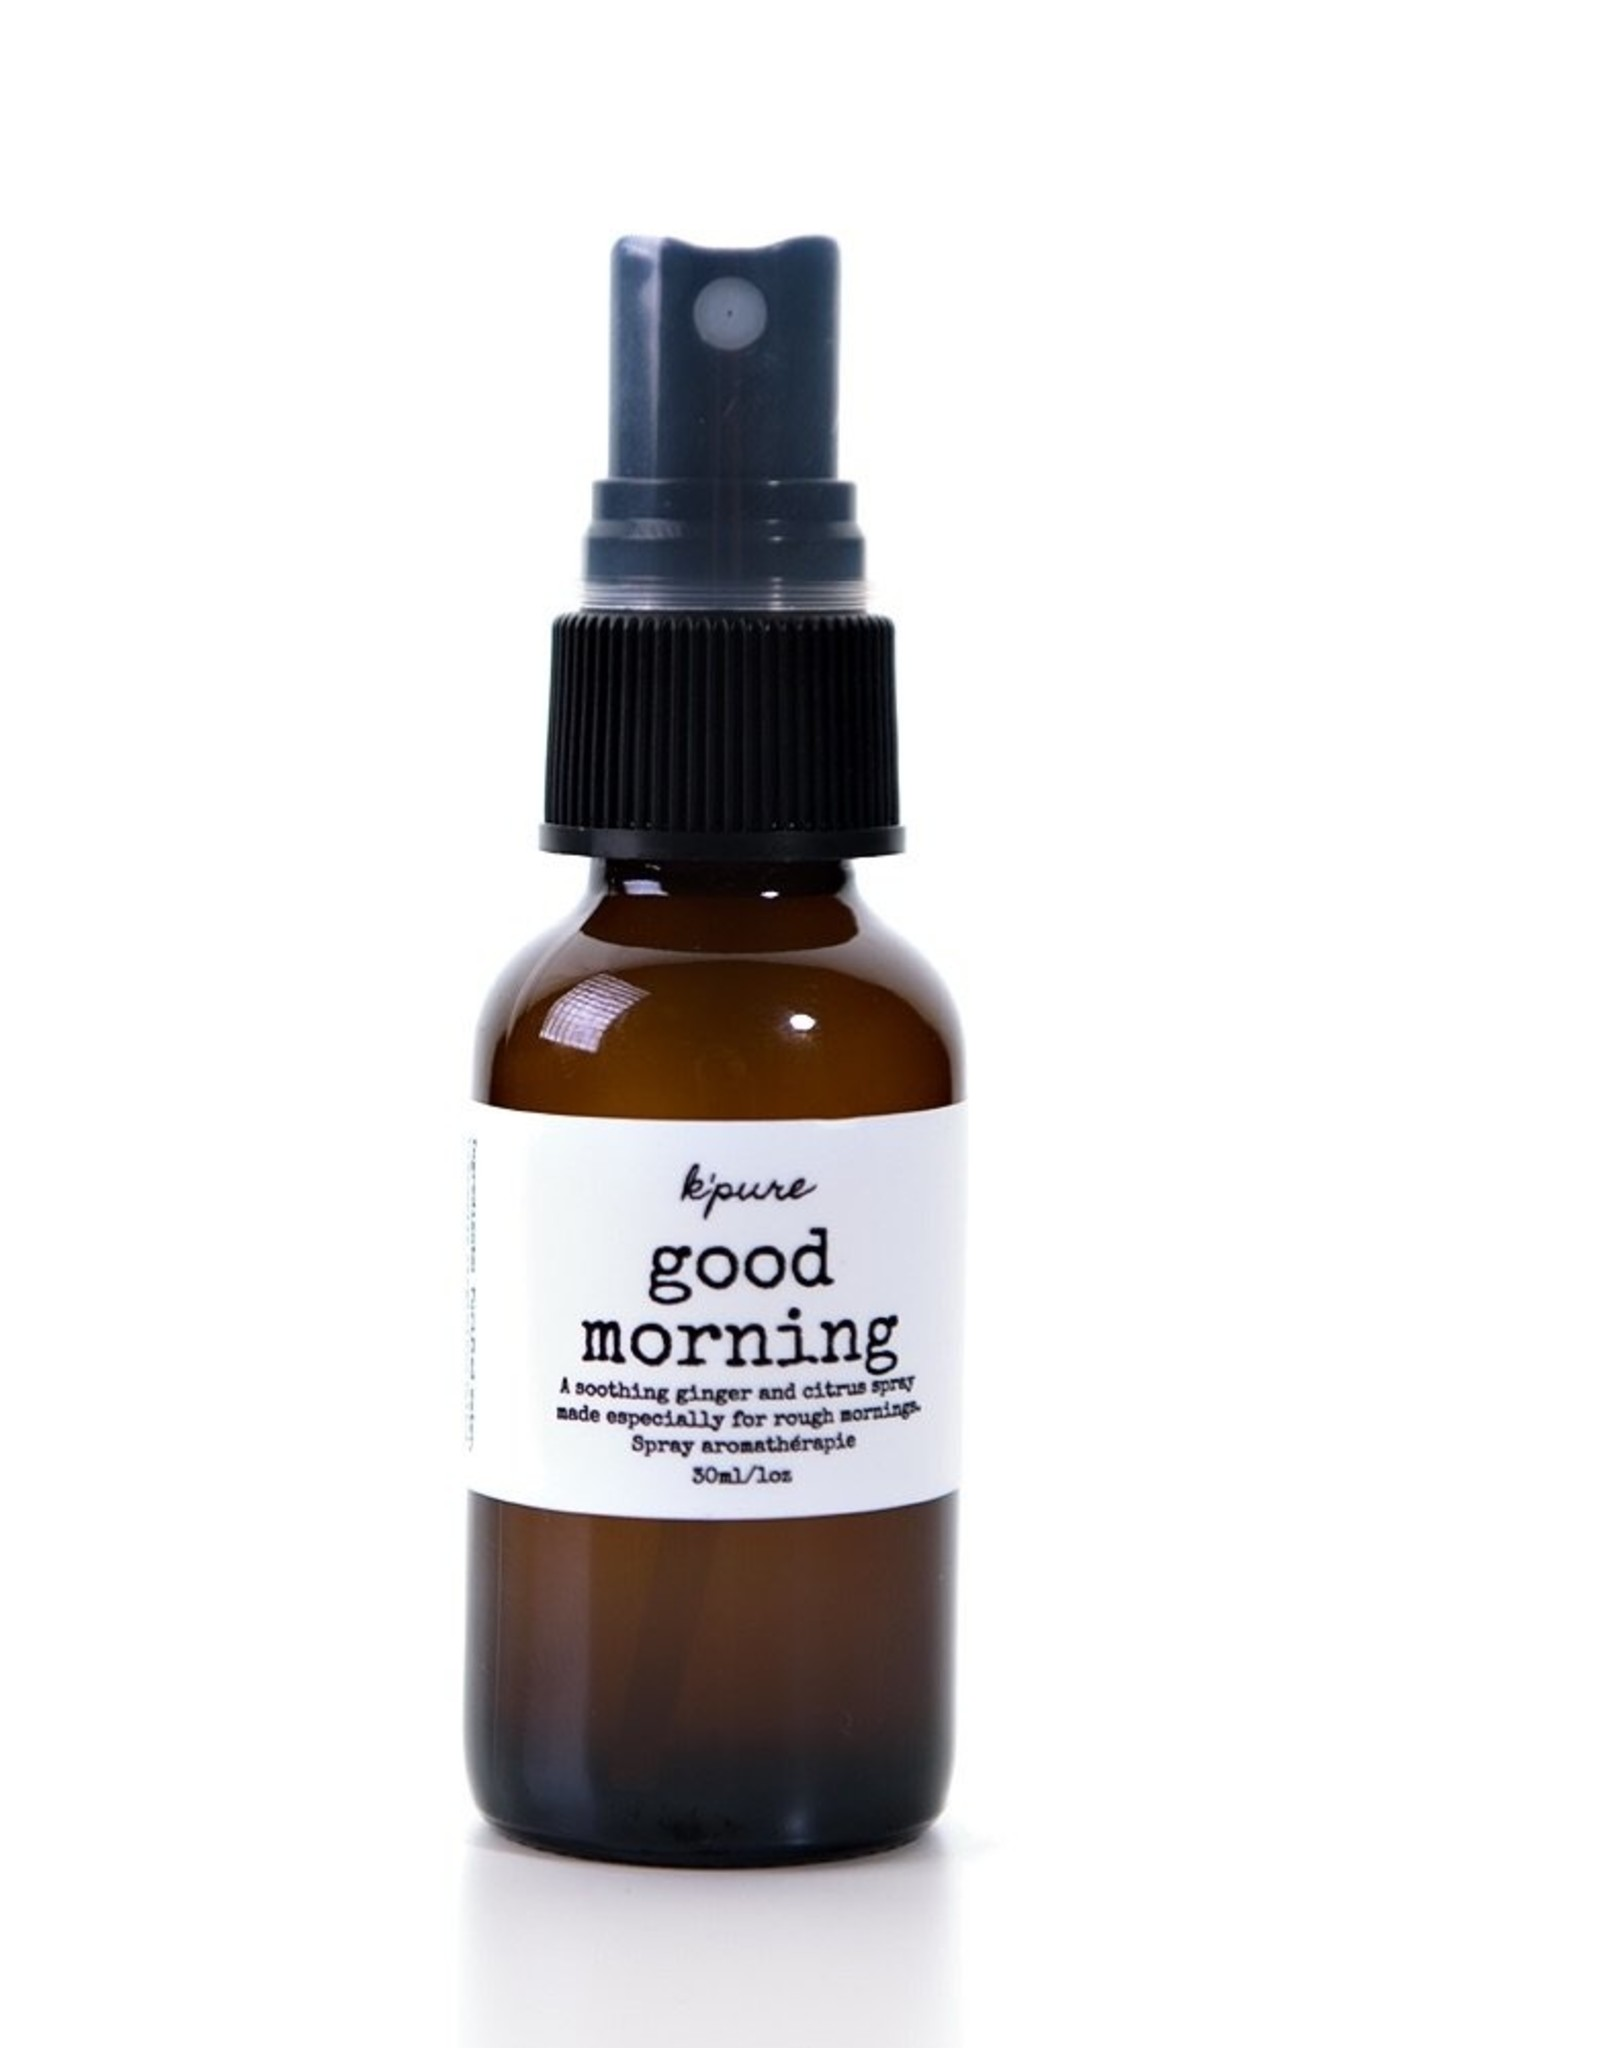 K'PURE GOOD MORNING essential oil mist